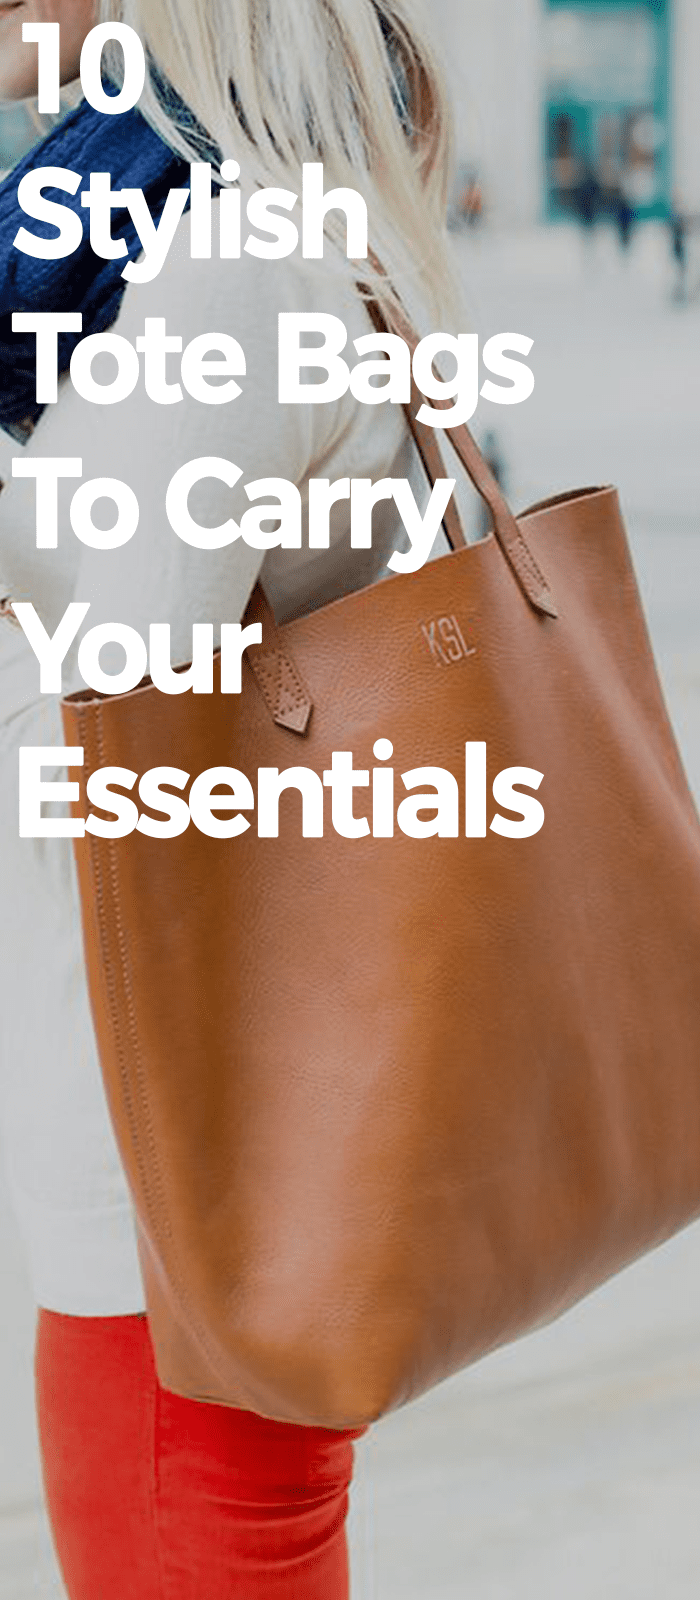 10 Stylish Tote Bags To Carry Your Essentials.